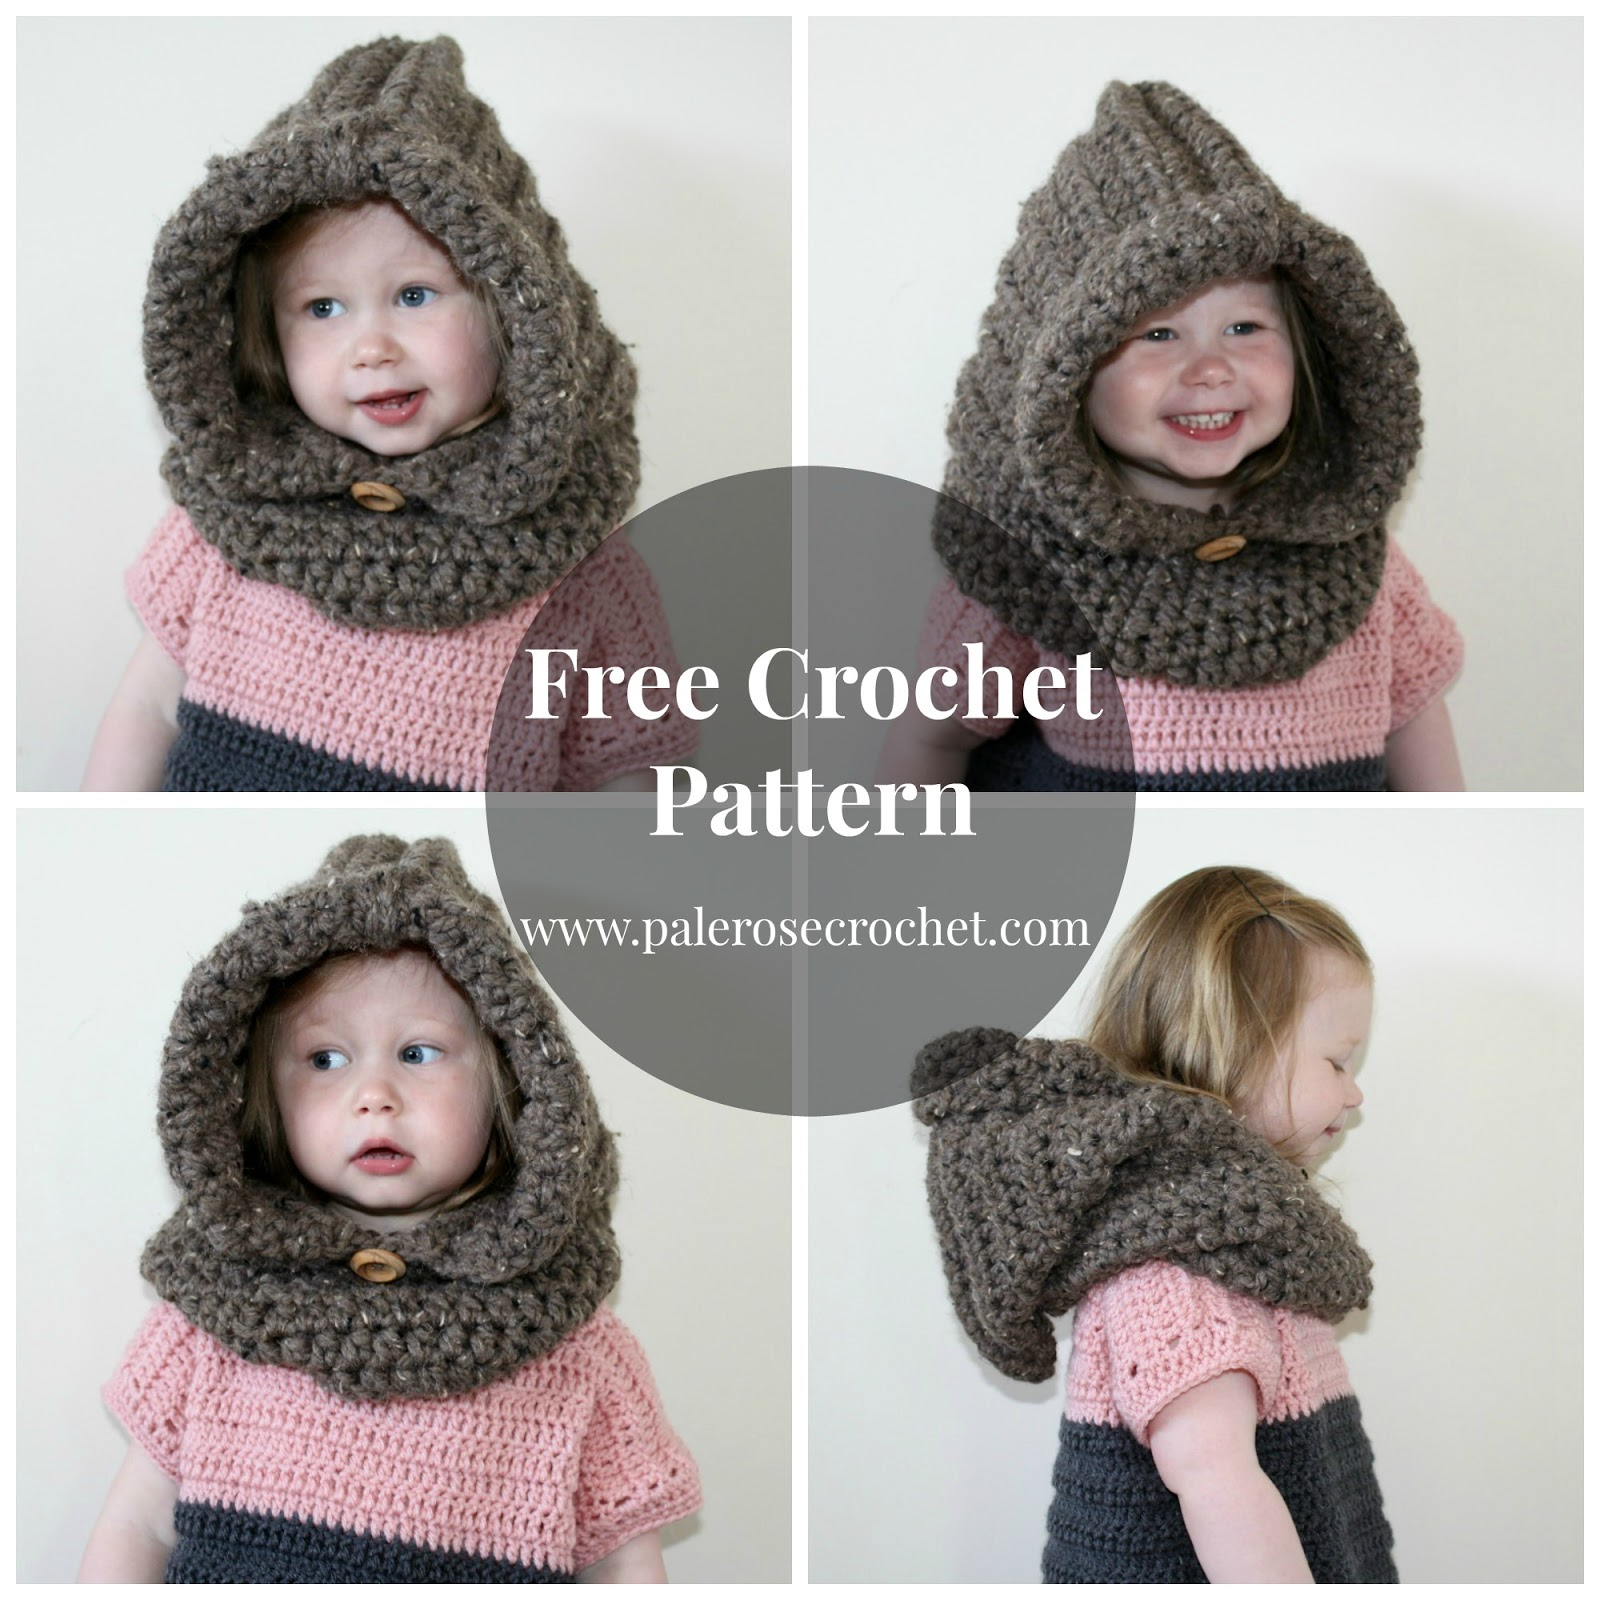 Crochet Patterns Galore - Toddler Hood